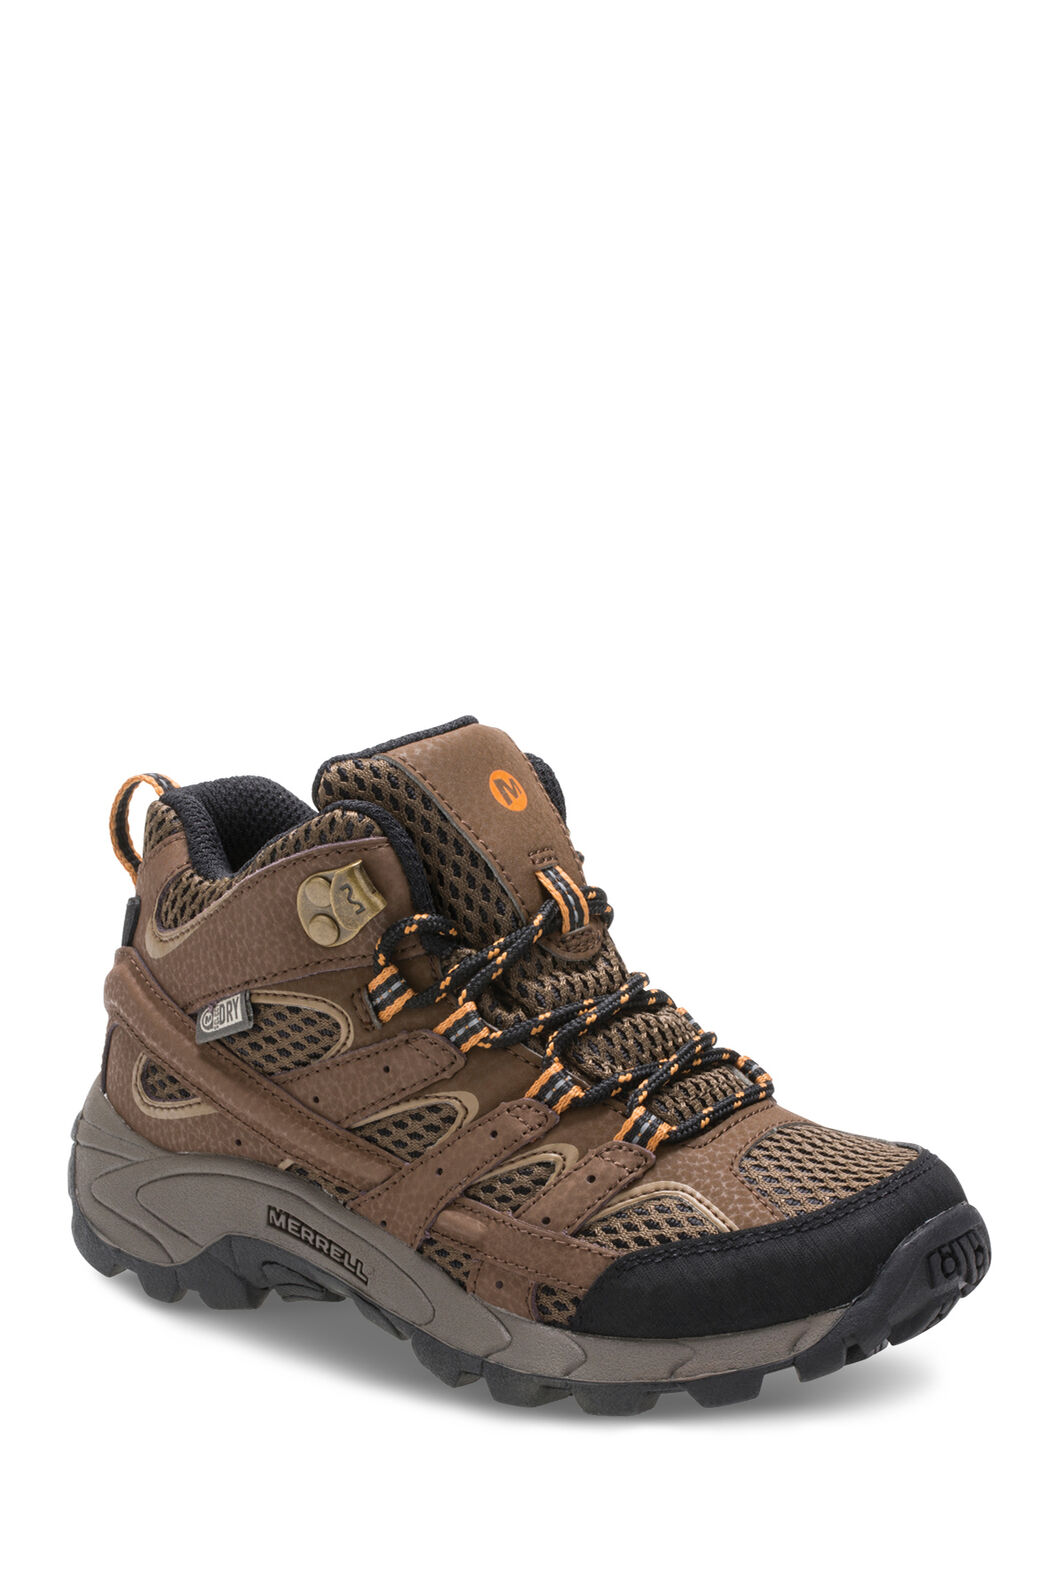 Merrell Moab 2 Waterproof Hiking Boots — Kids', Earth, hi-res